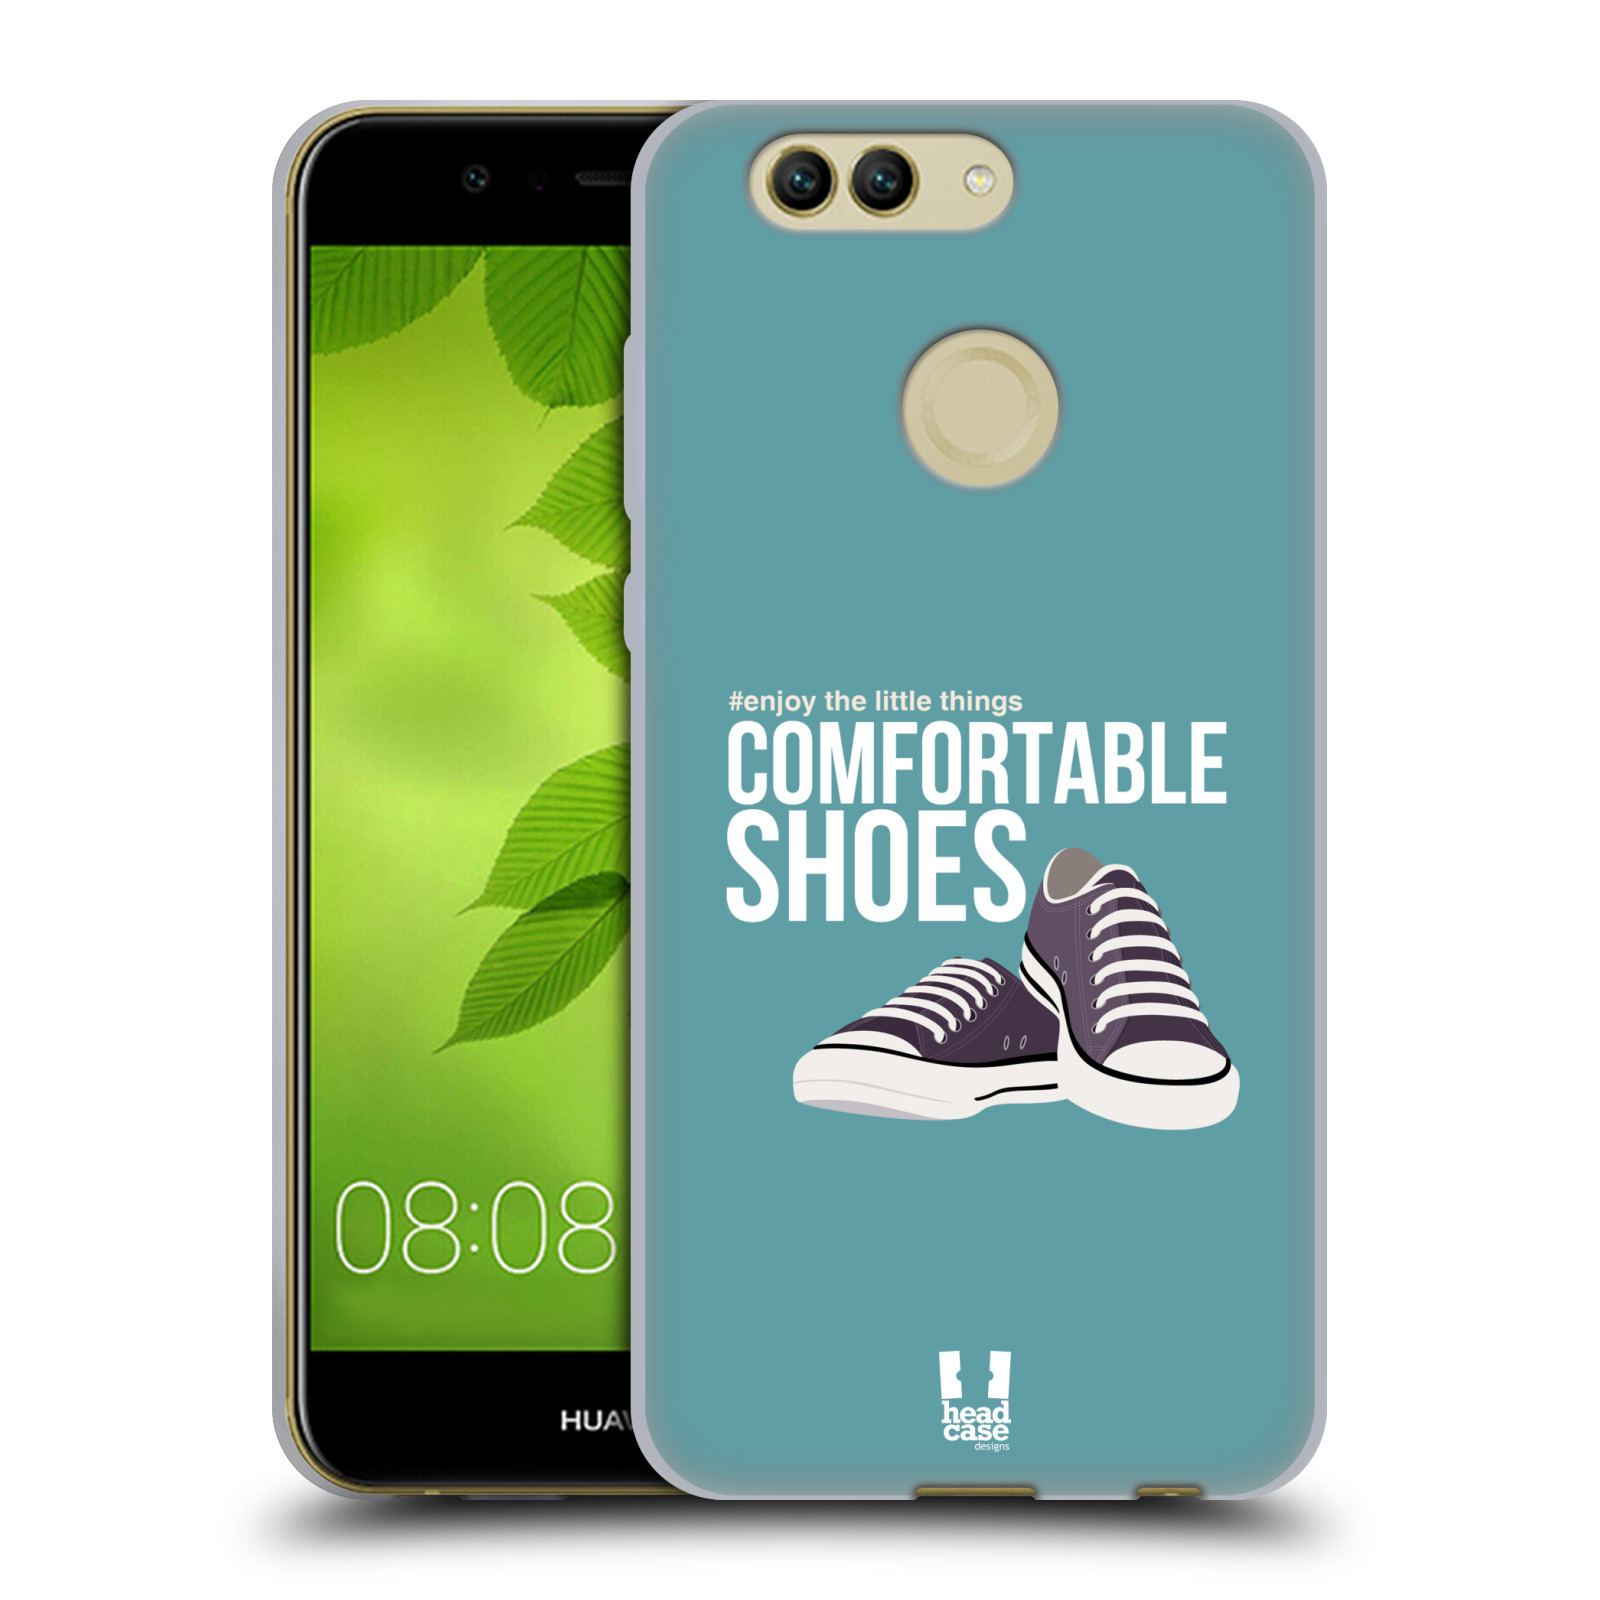 HEAD CASE DESIGNS ENJOY THE LITTLE THINGS SOFT GEL HÜLLE FÜR HUAWEI NOVA 2 PLUS